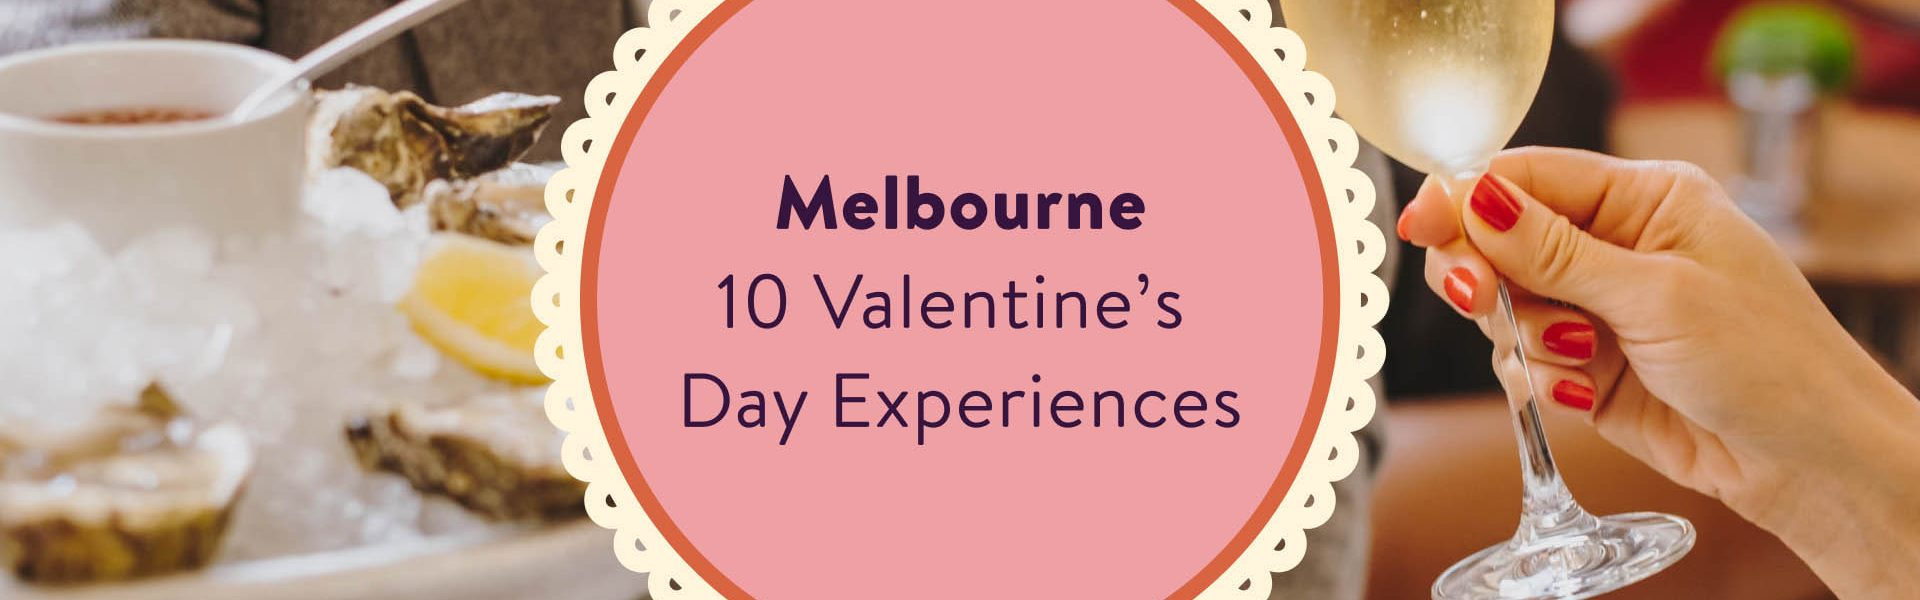 10 Valentine's Day Experiences in Melbourne